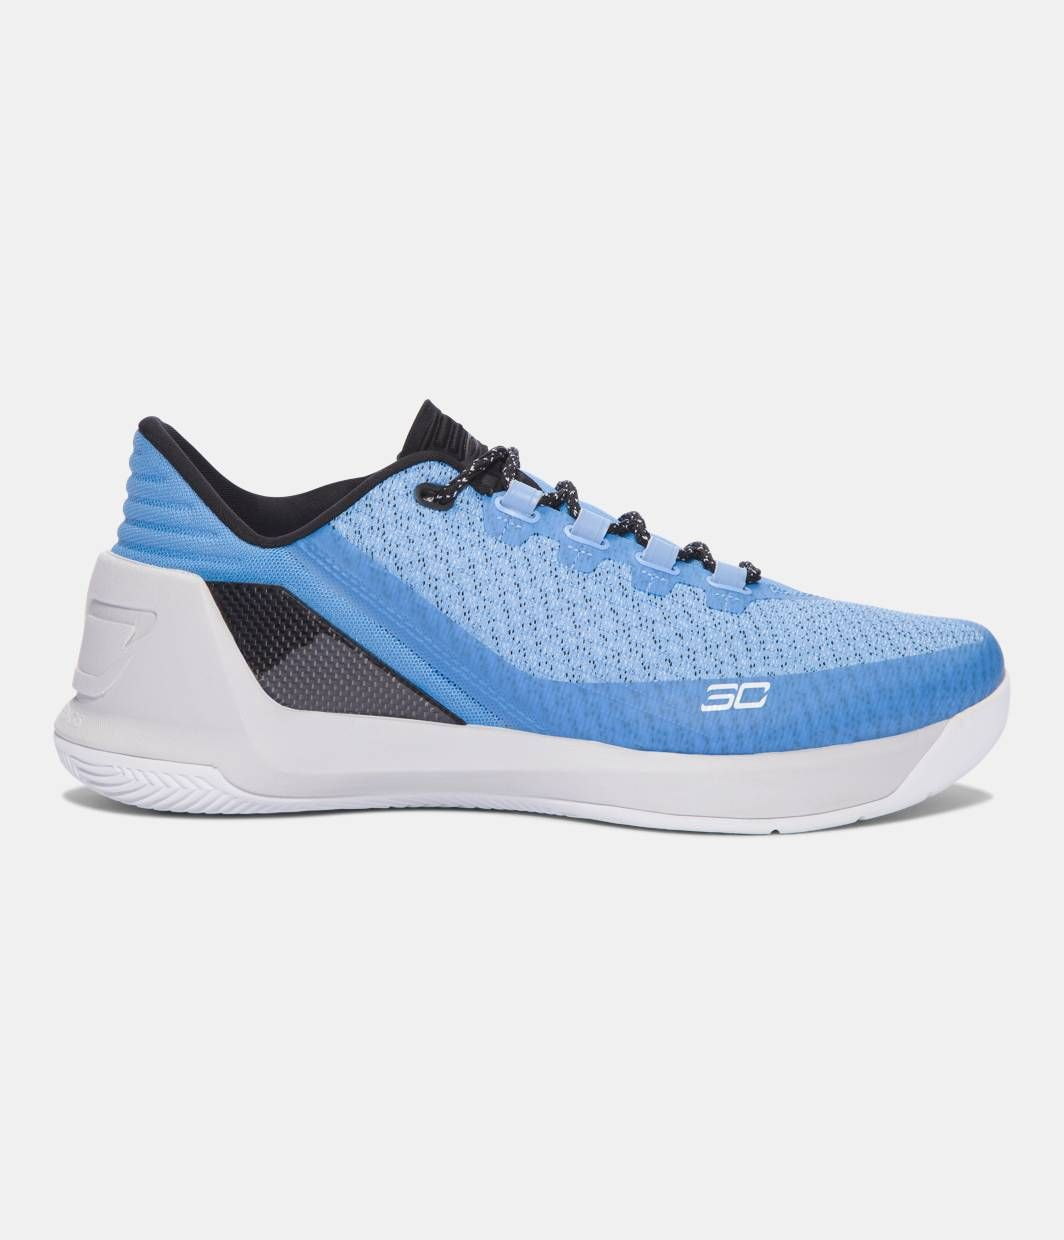 Men's UA Curry 3 Low Basketball Shoes | Carolina blue, Shoe department and  Armours